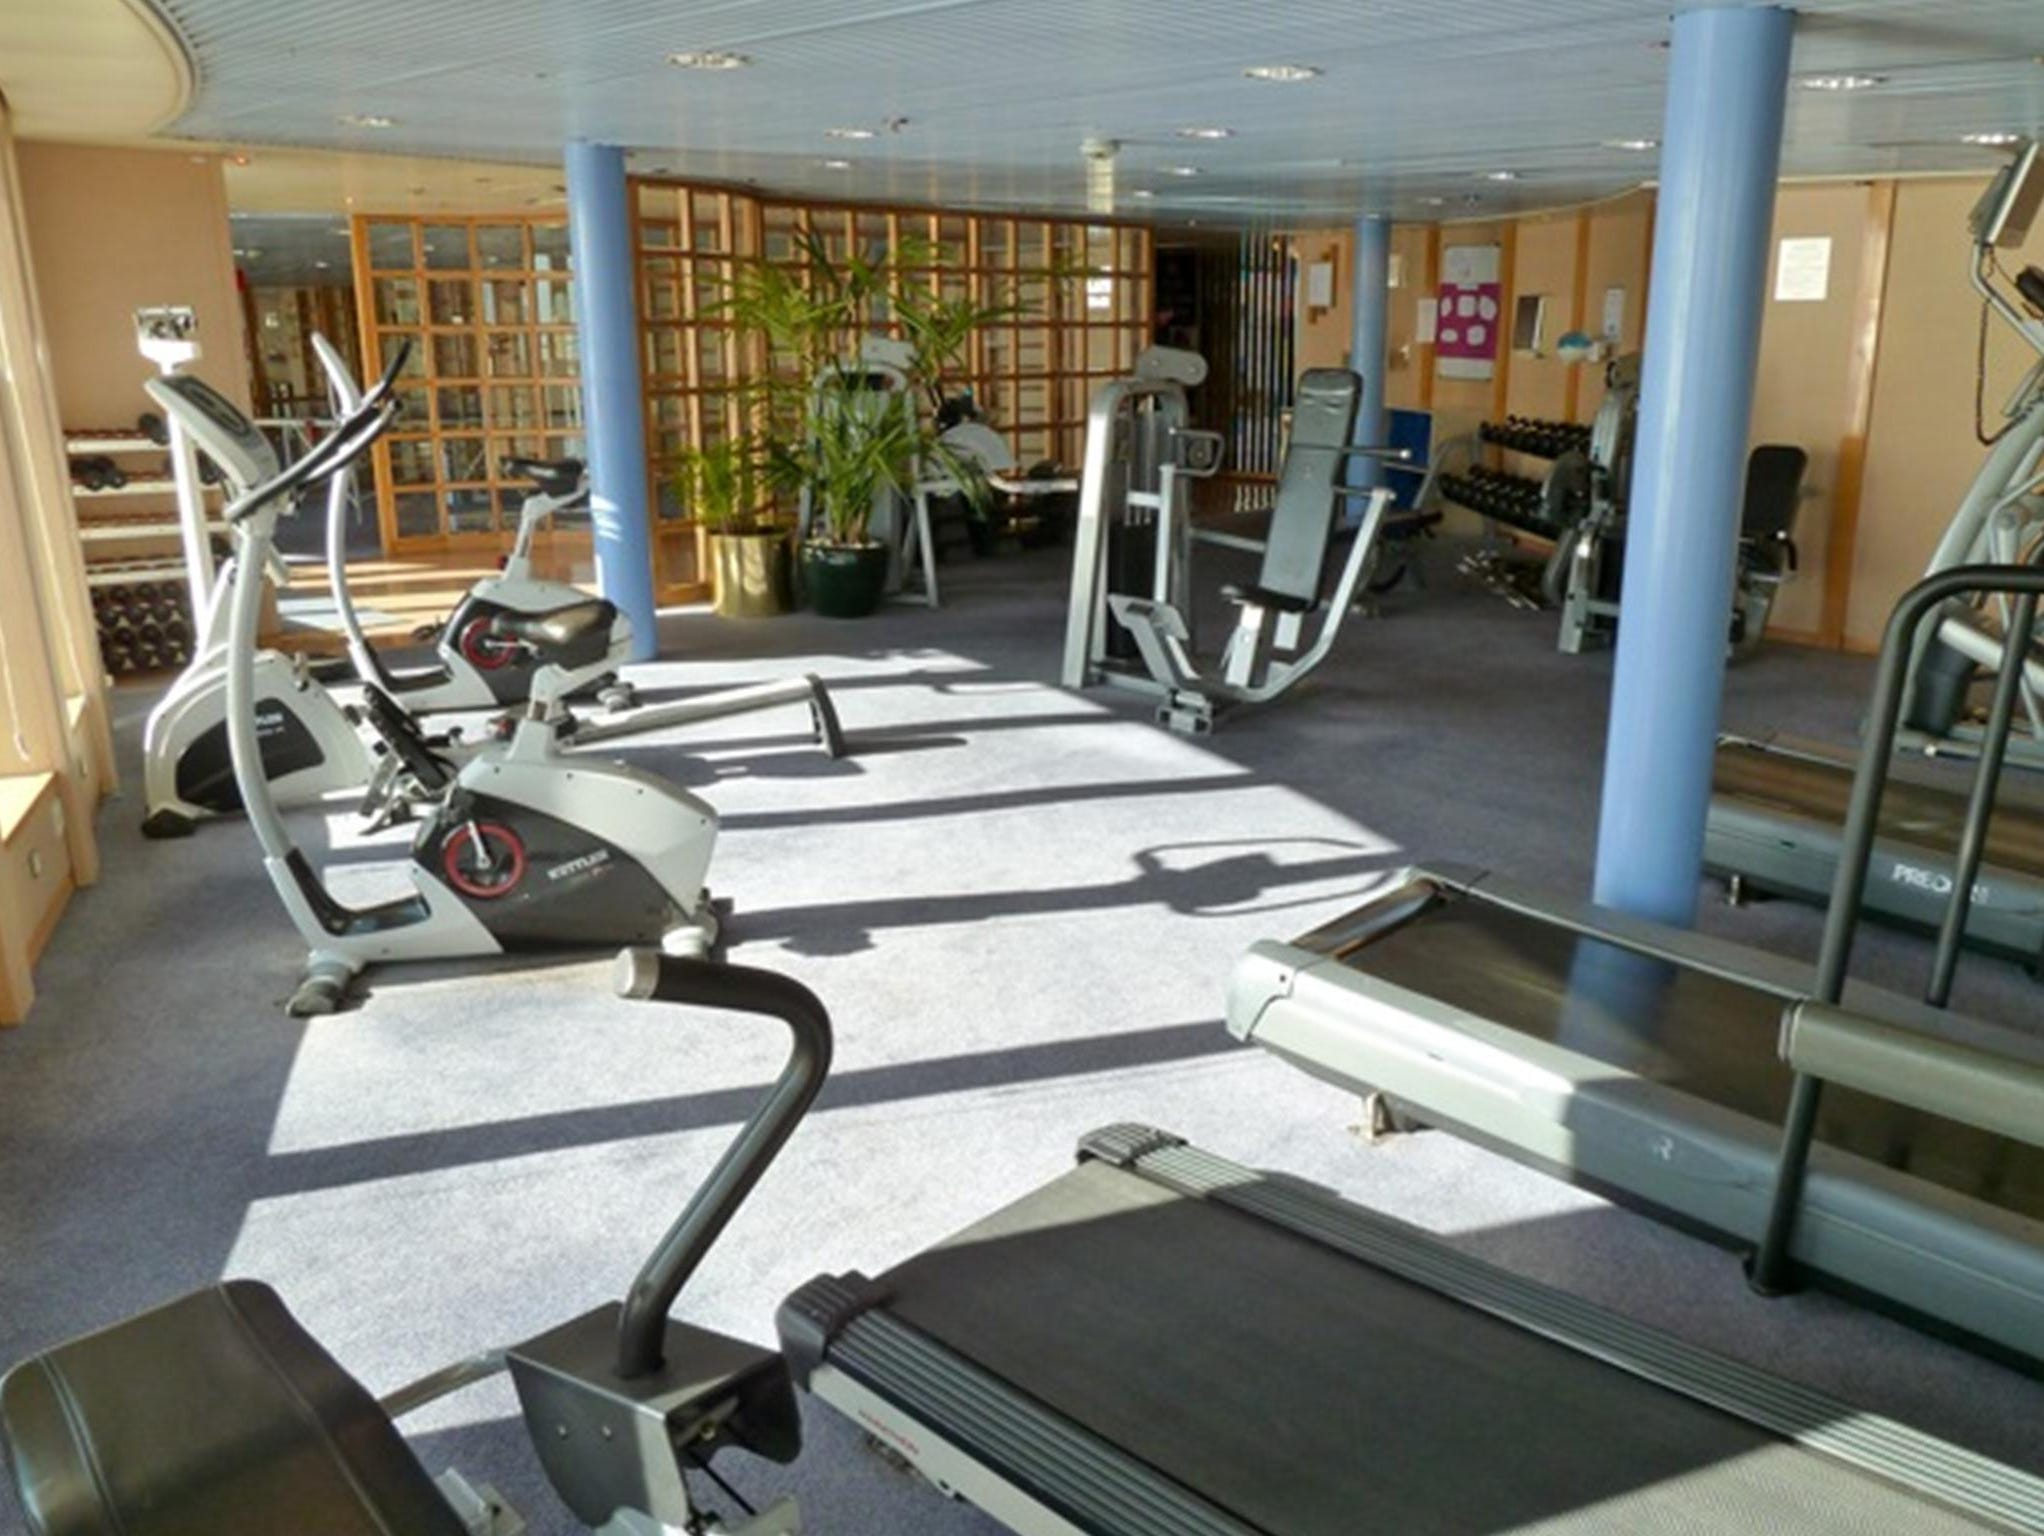 The Marco Polo's gymnasium overlooks the stern from the starboard side of Columbus Deck. Facilities include cardio equipment, weight machines and free weights.